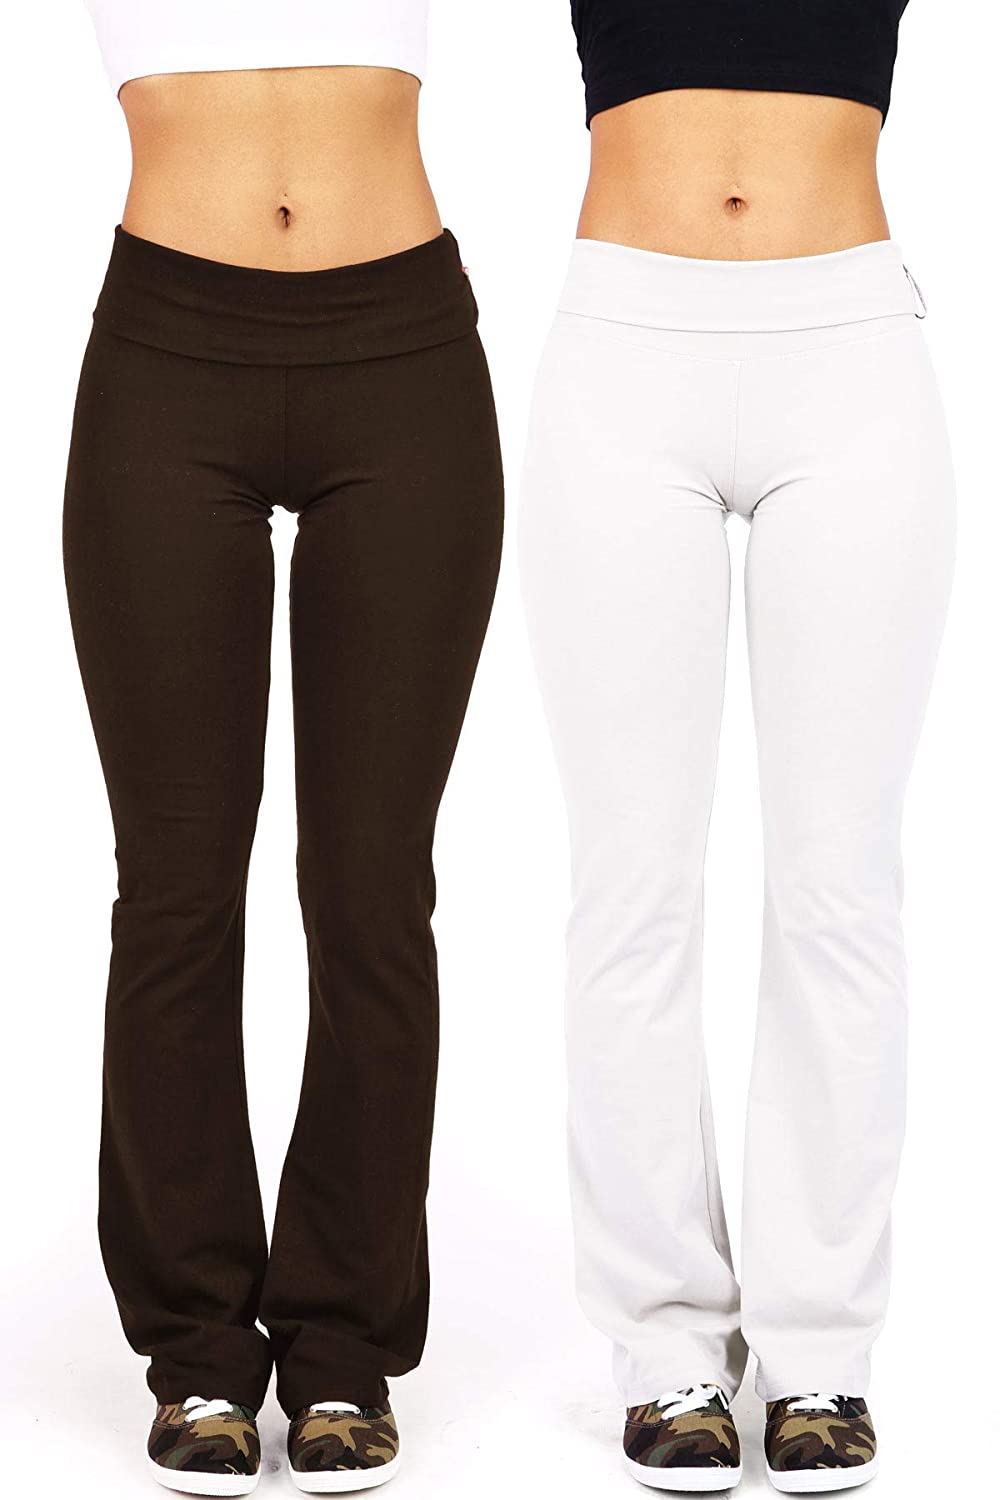 Ambiance Apparel Womens Juniors Foldover Stretchy Yoga Pants Combo